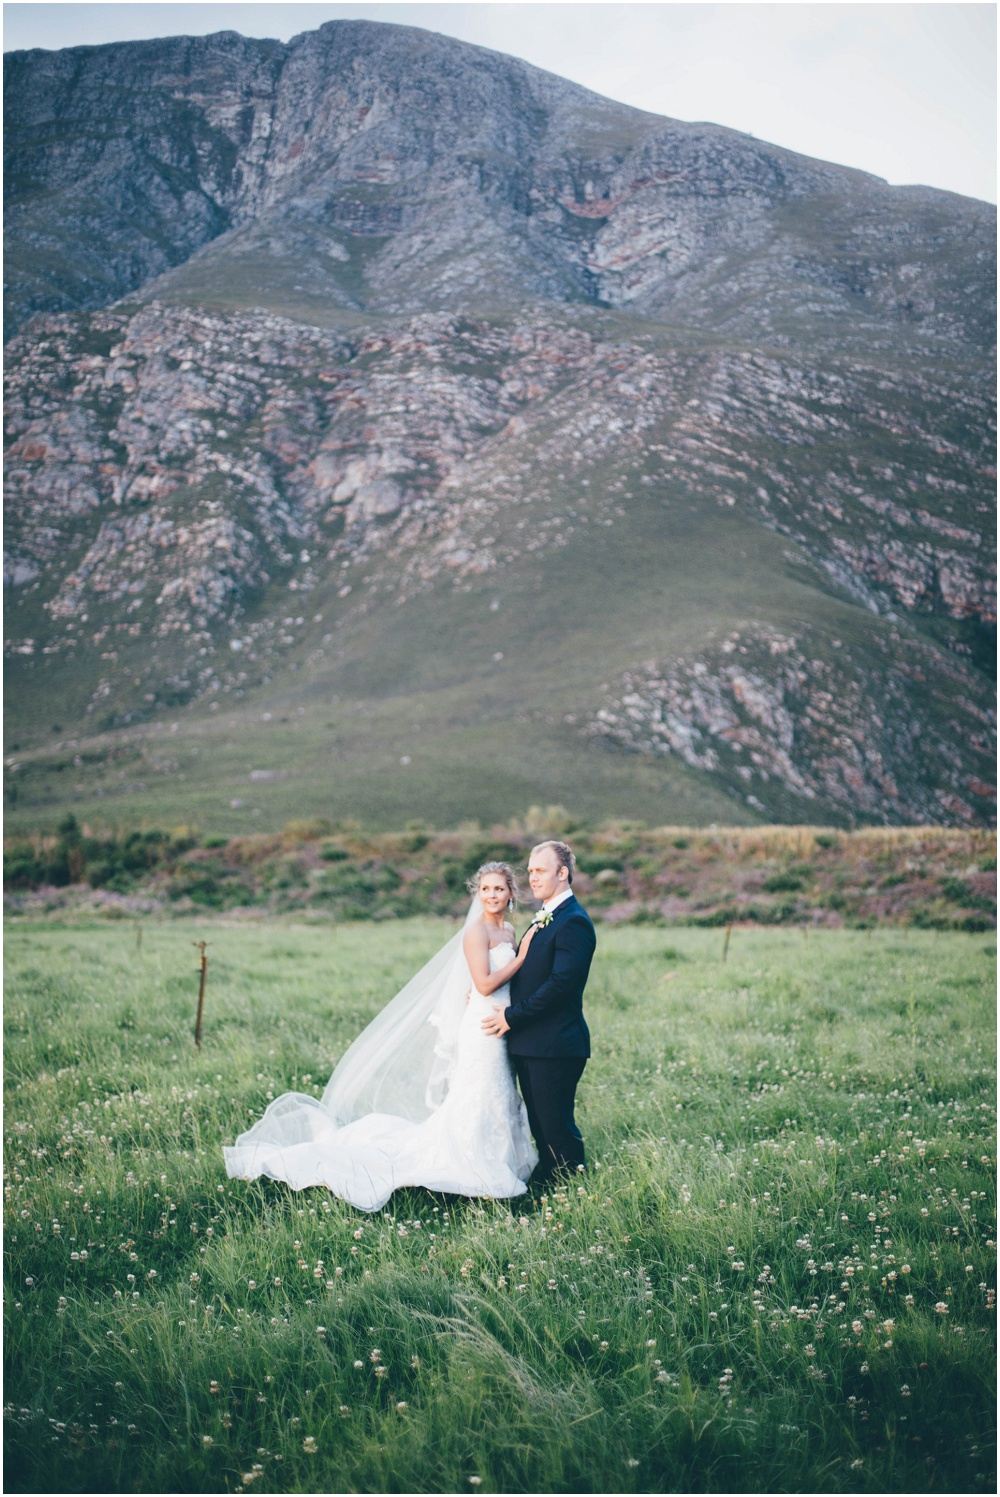 Ronel Kruger Cape Town Wedding and Lifestyle Photographer_2844.jpg